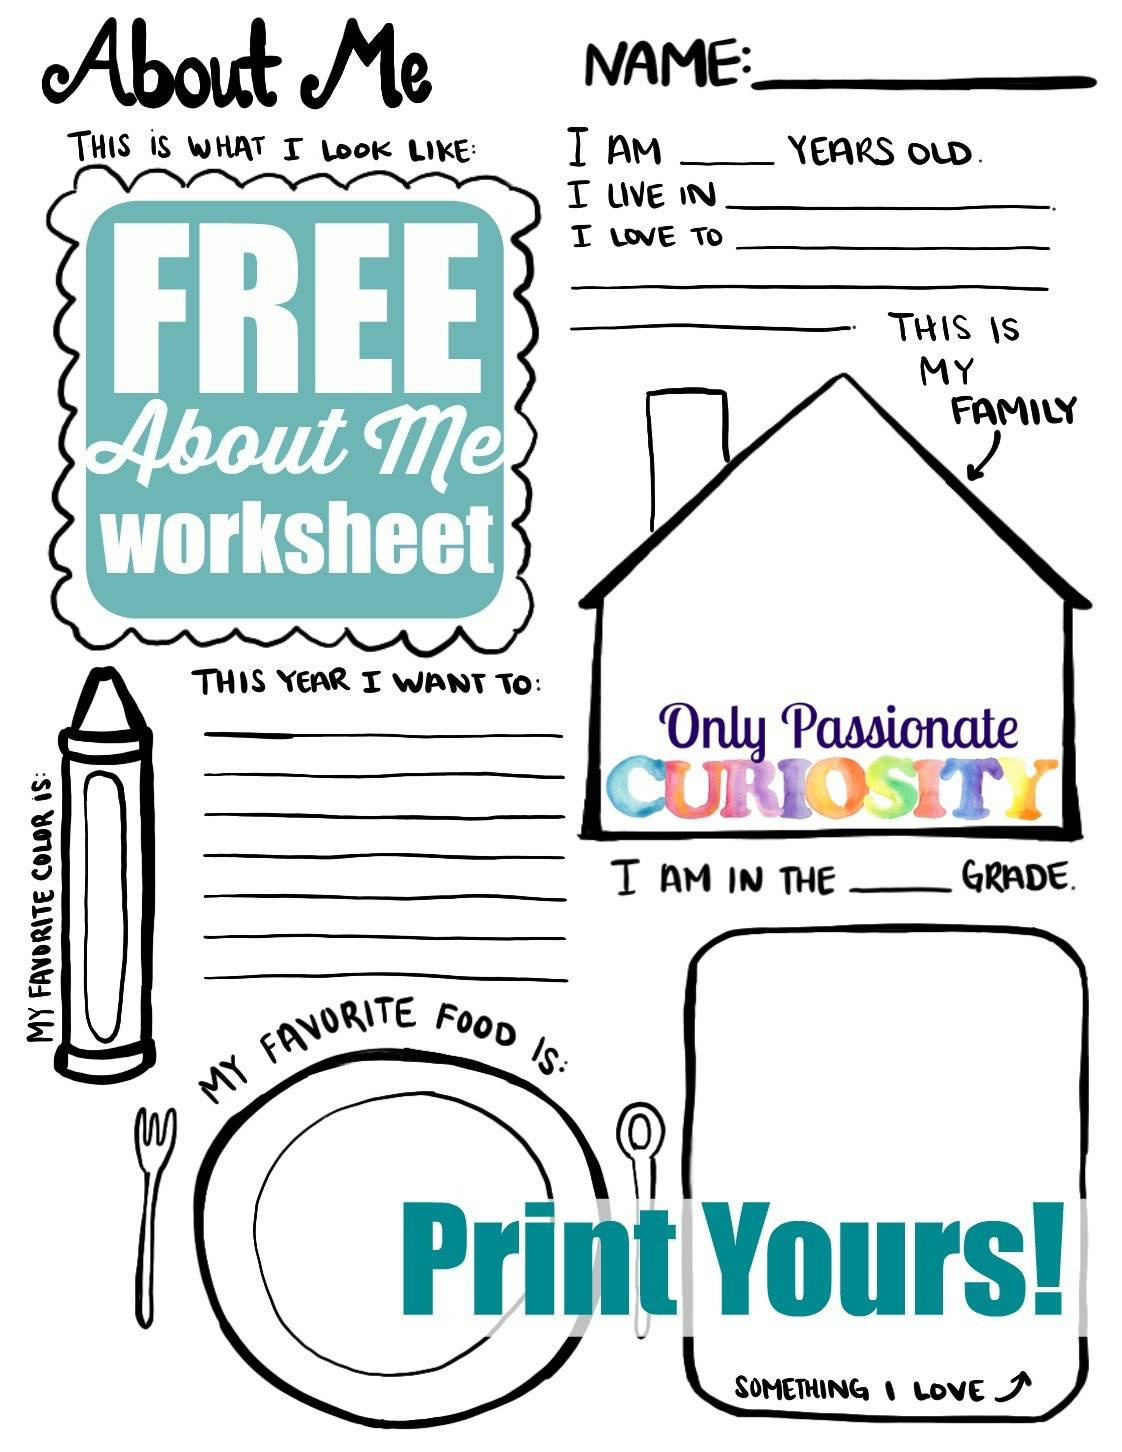 Satisfactory image for all about me free printable worksheet